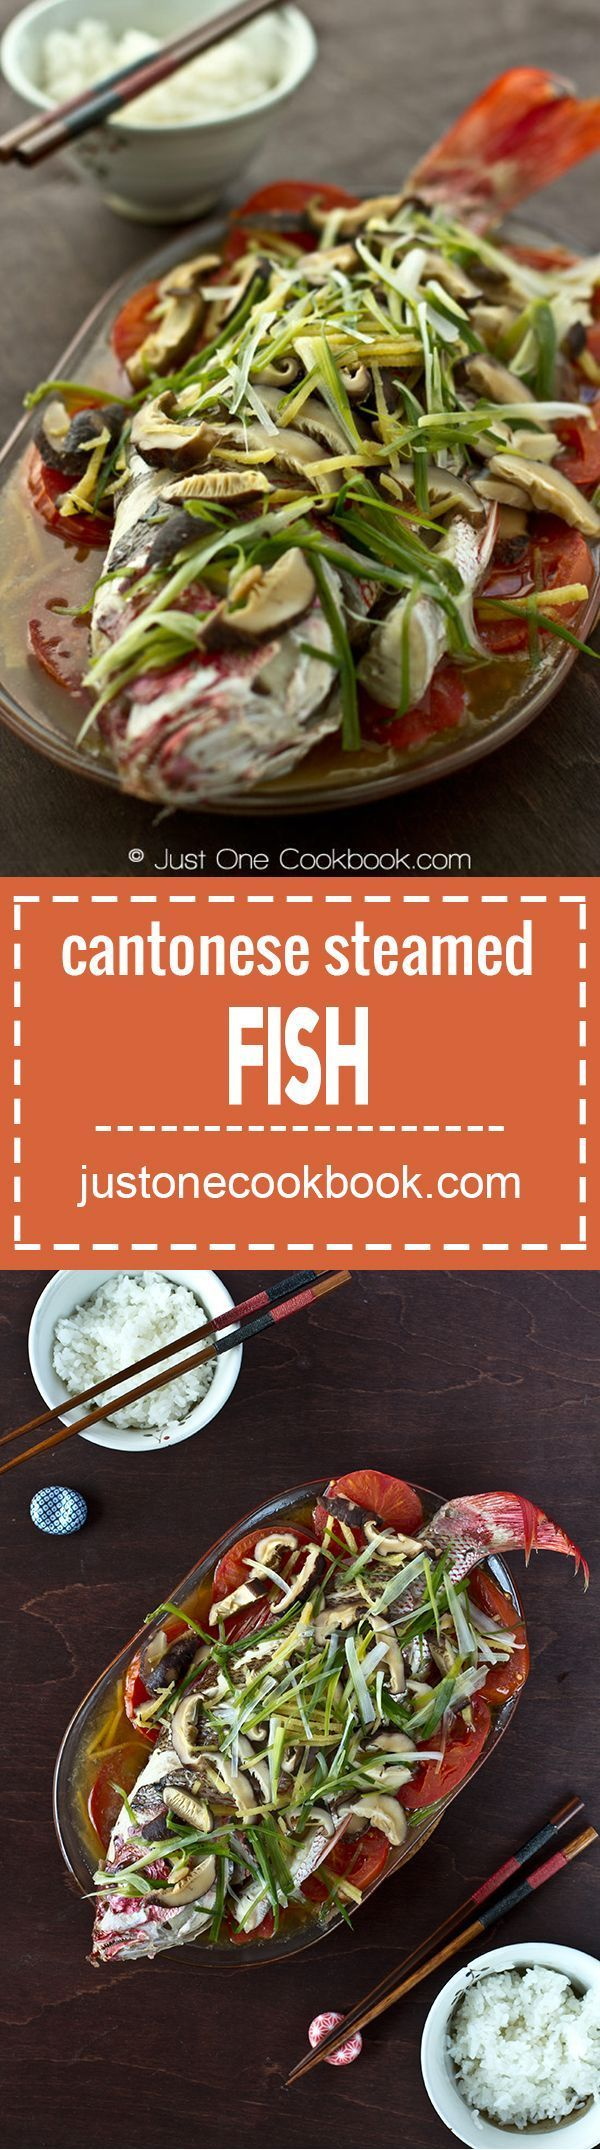 Cantonese Steamed Fish | Easy Japanese Recipes at JustOneCookbook.com